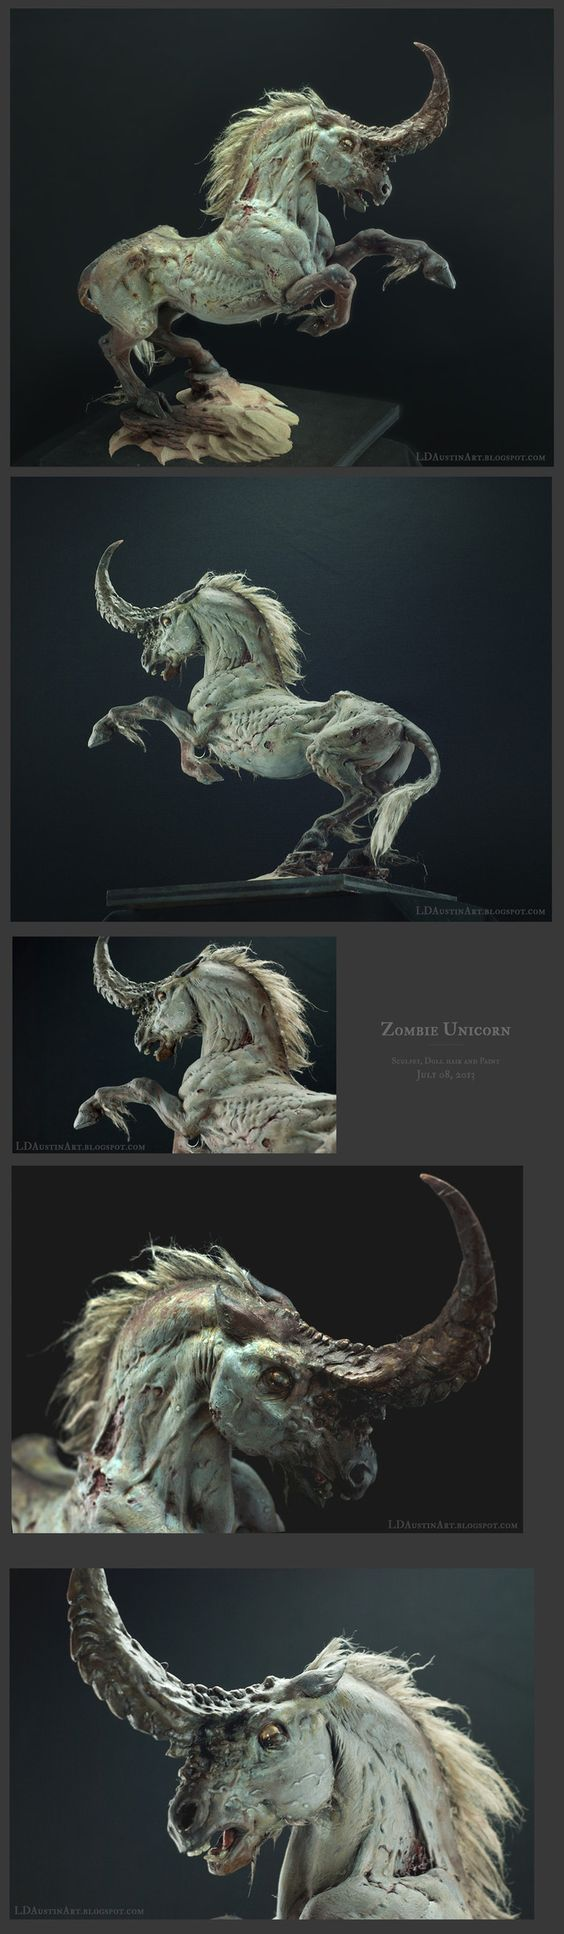 You've probably cried over Laurel Austin's Starcraft/Warcraft paintings before. Did you know she sculpts too? Here's a zombie unicorn.